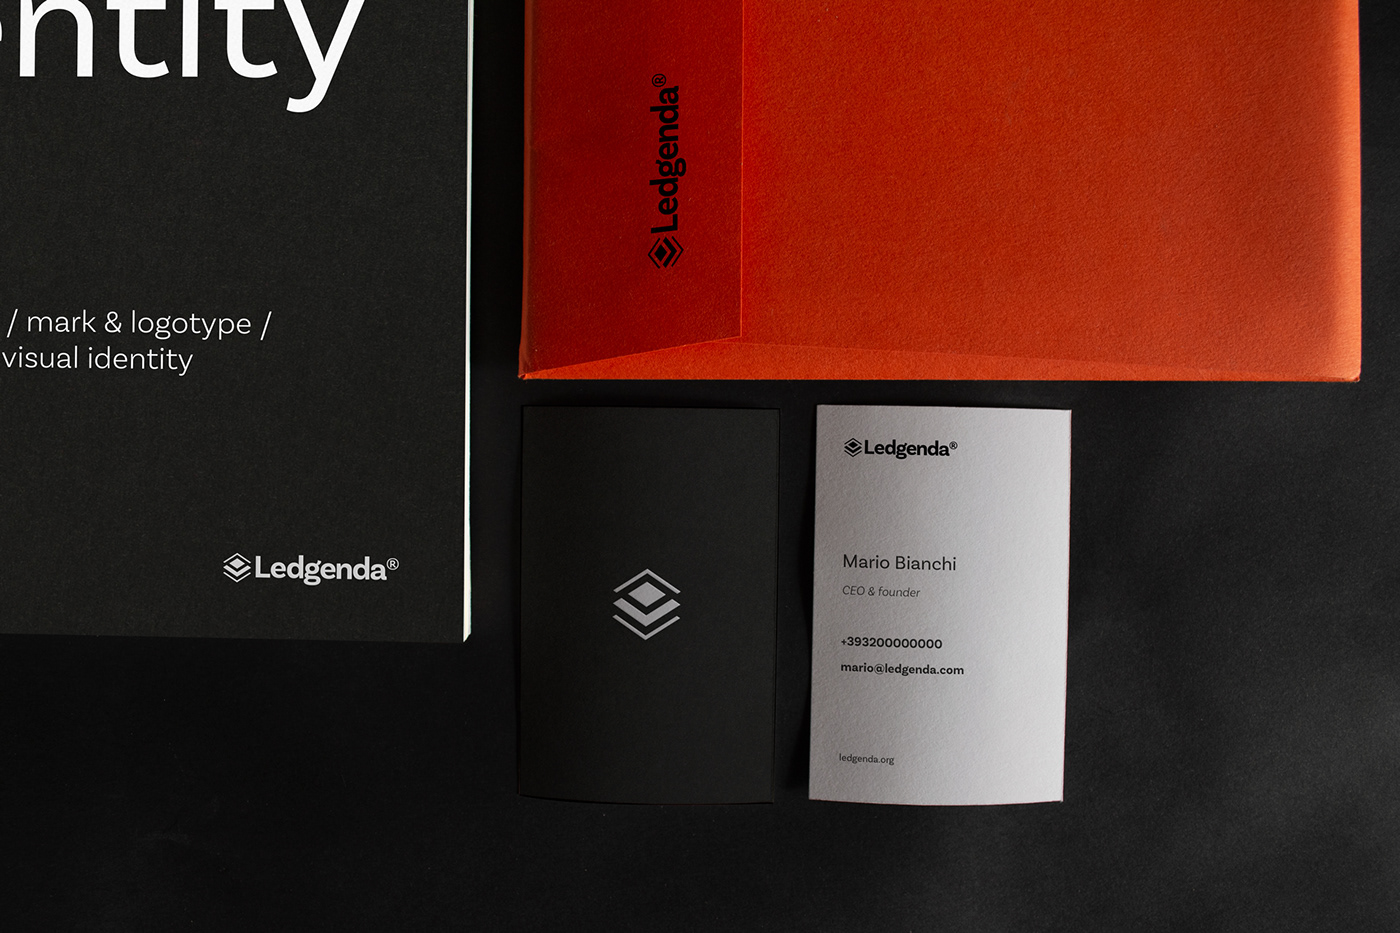 stationery items: brand book, envelope and business cards